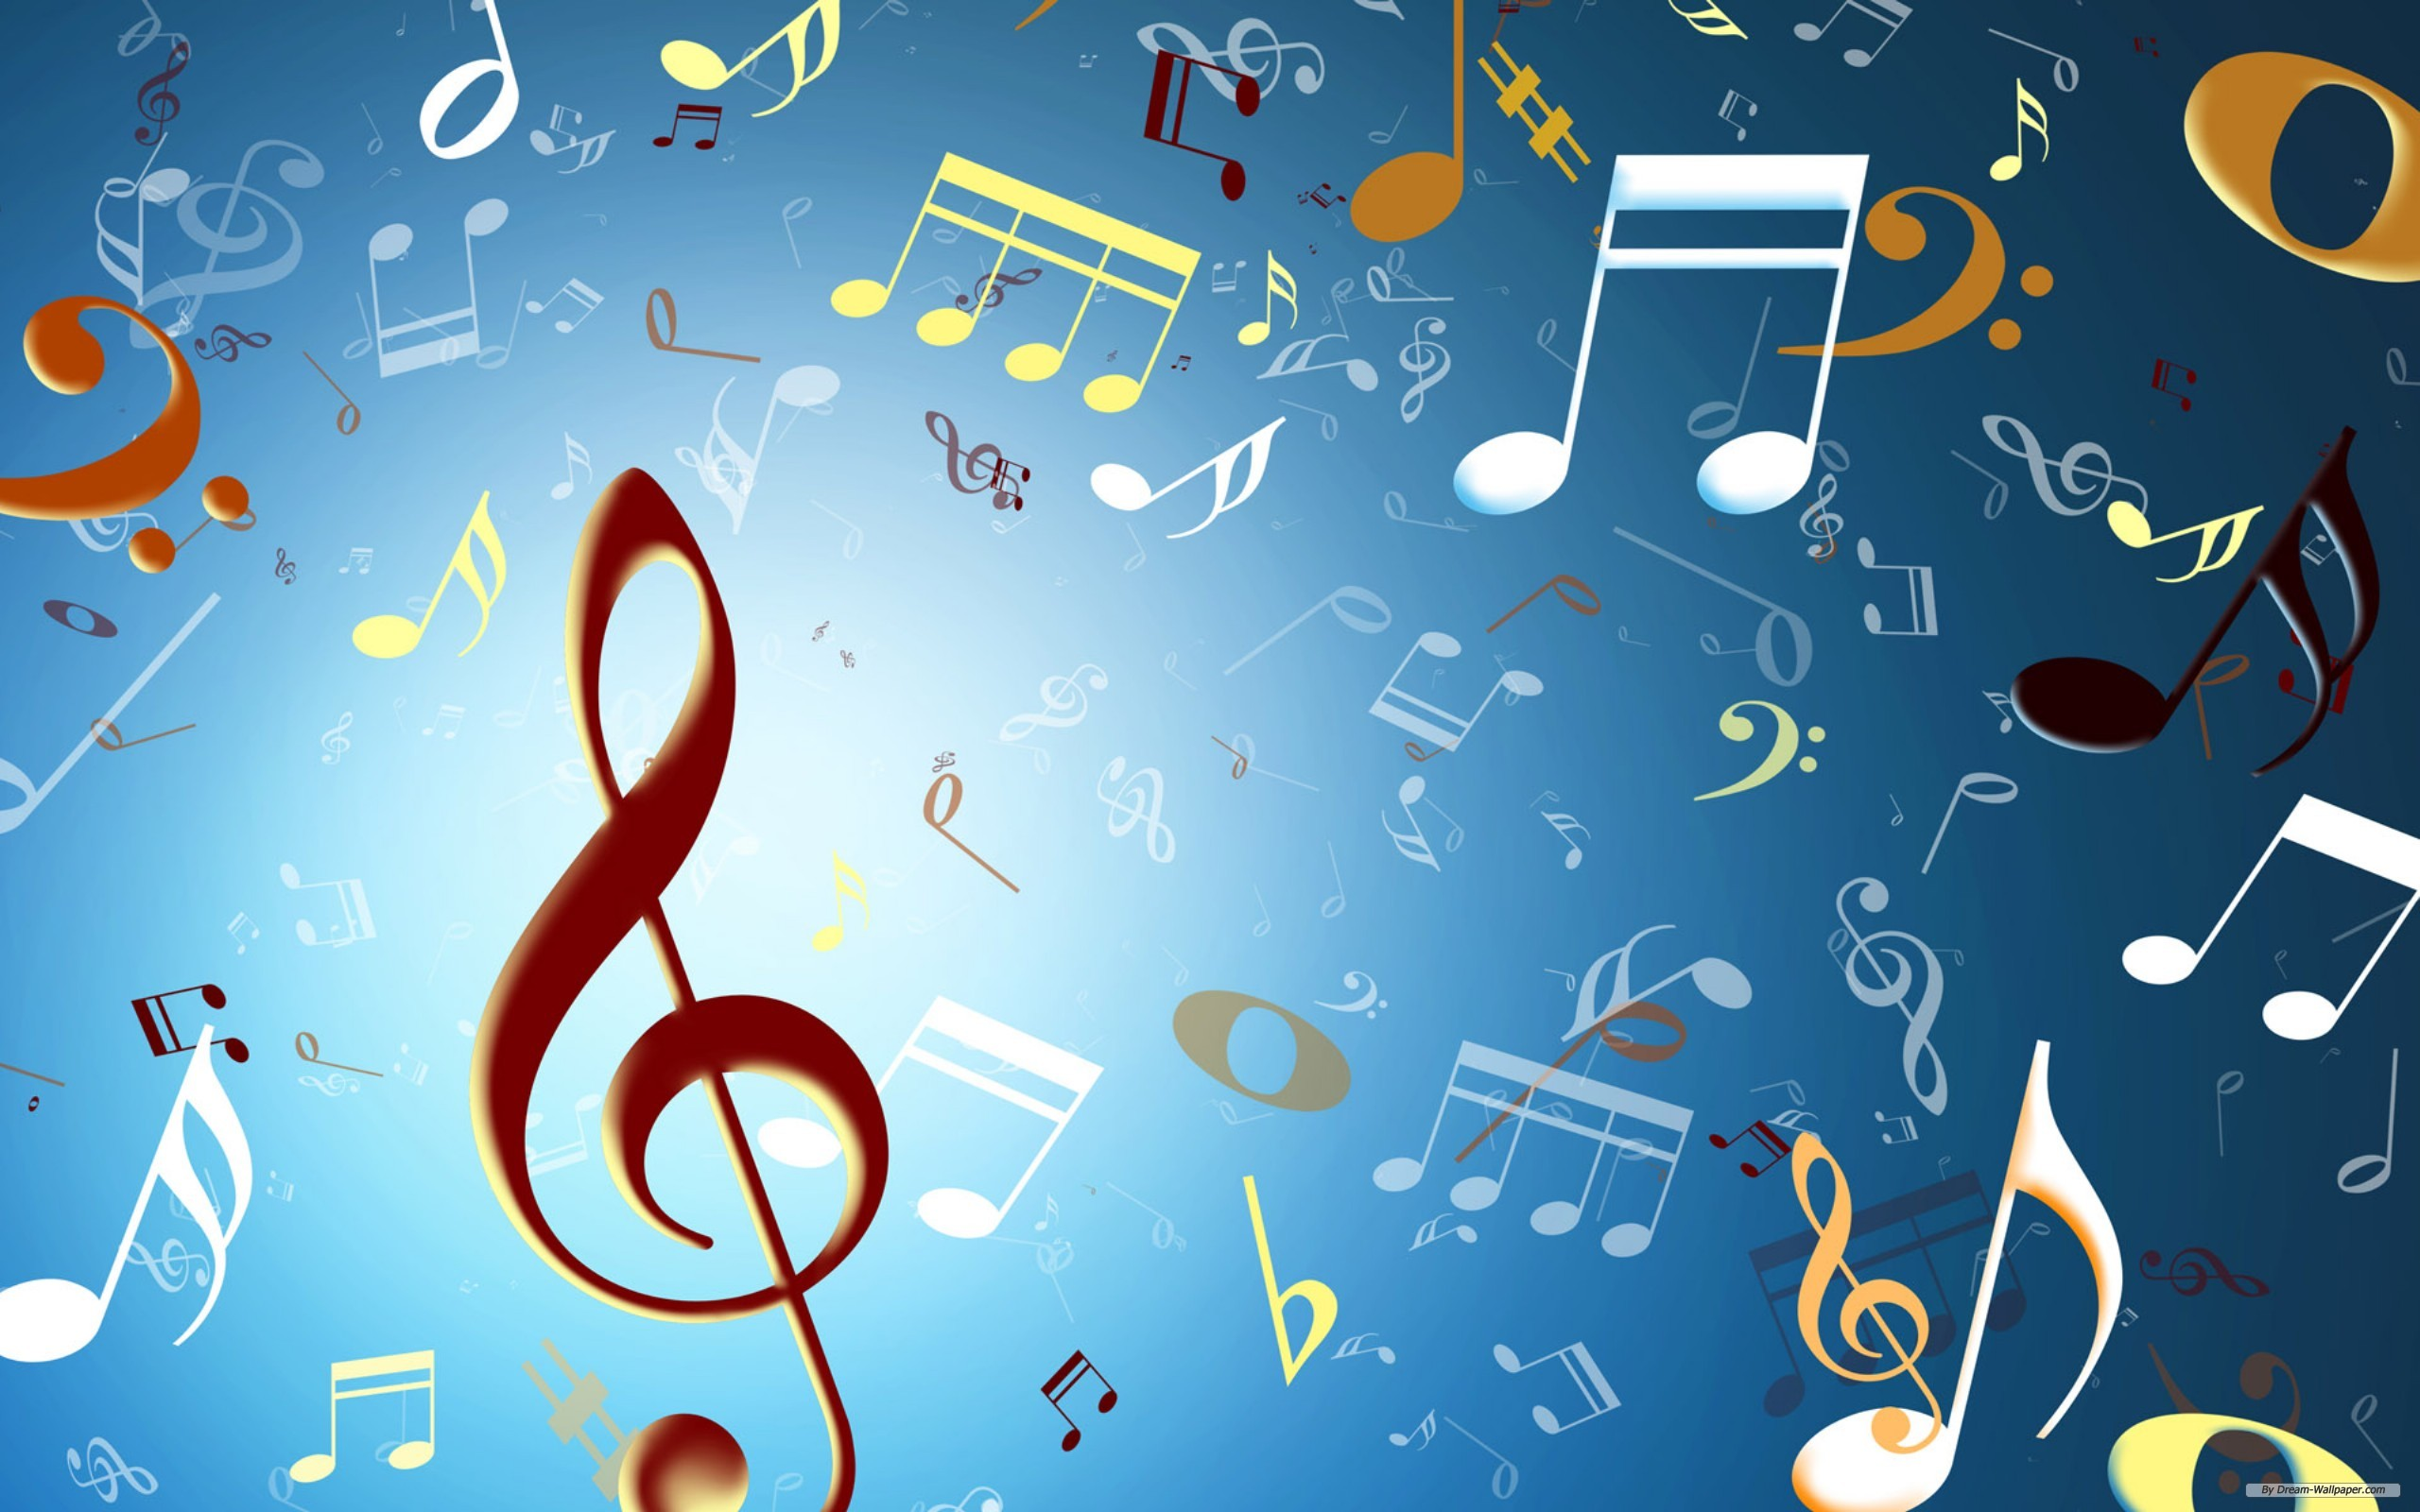 Music Notes Backgrounds: Musical Notes Full HD Wallpaper And Background Image